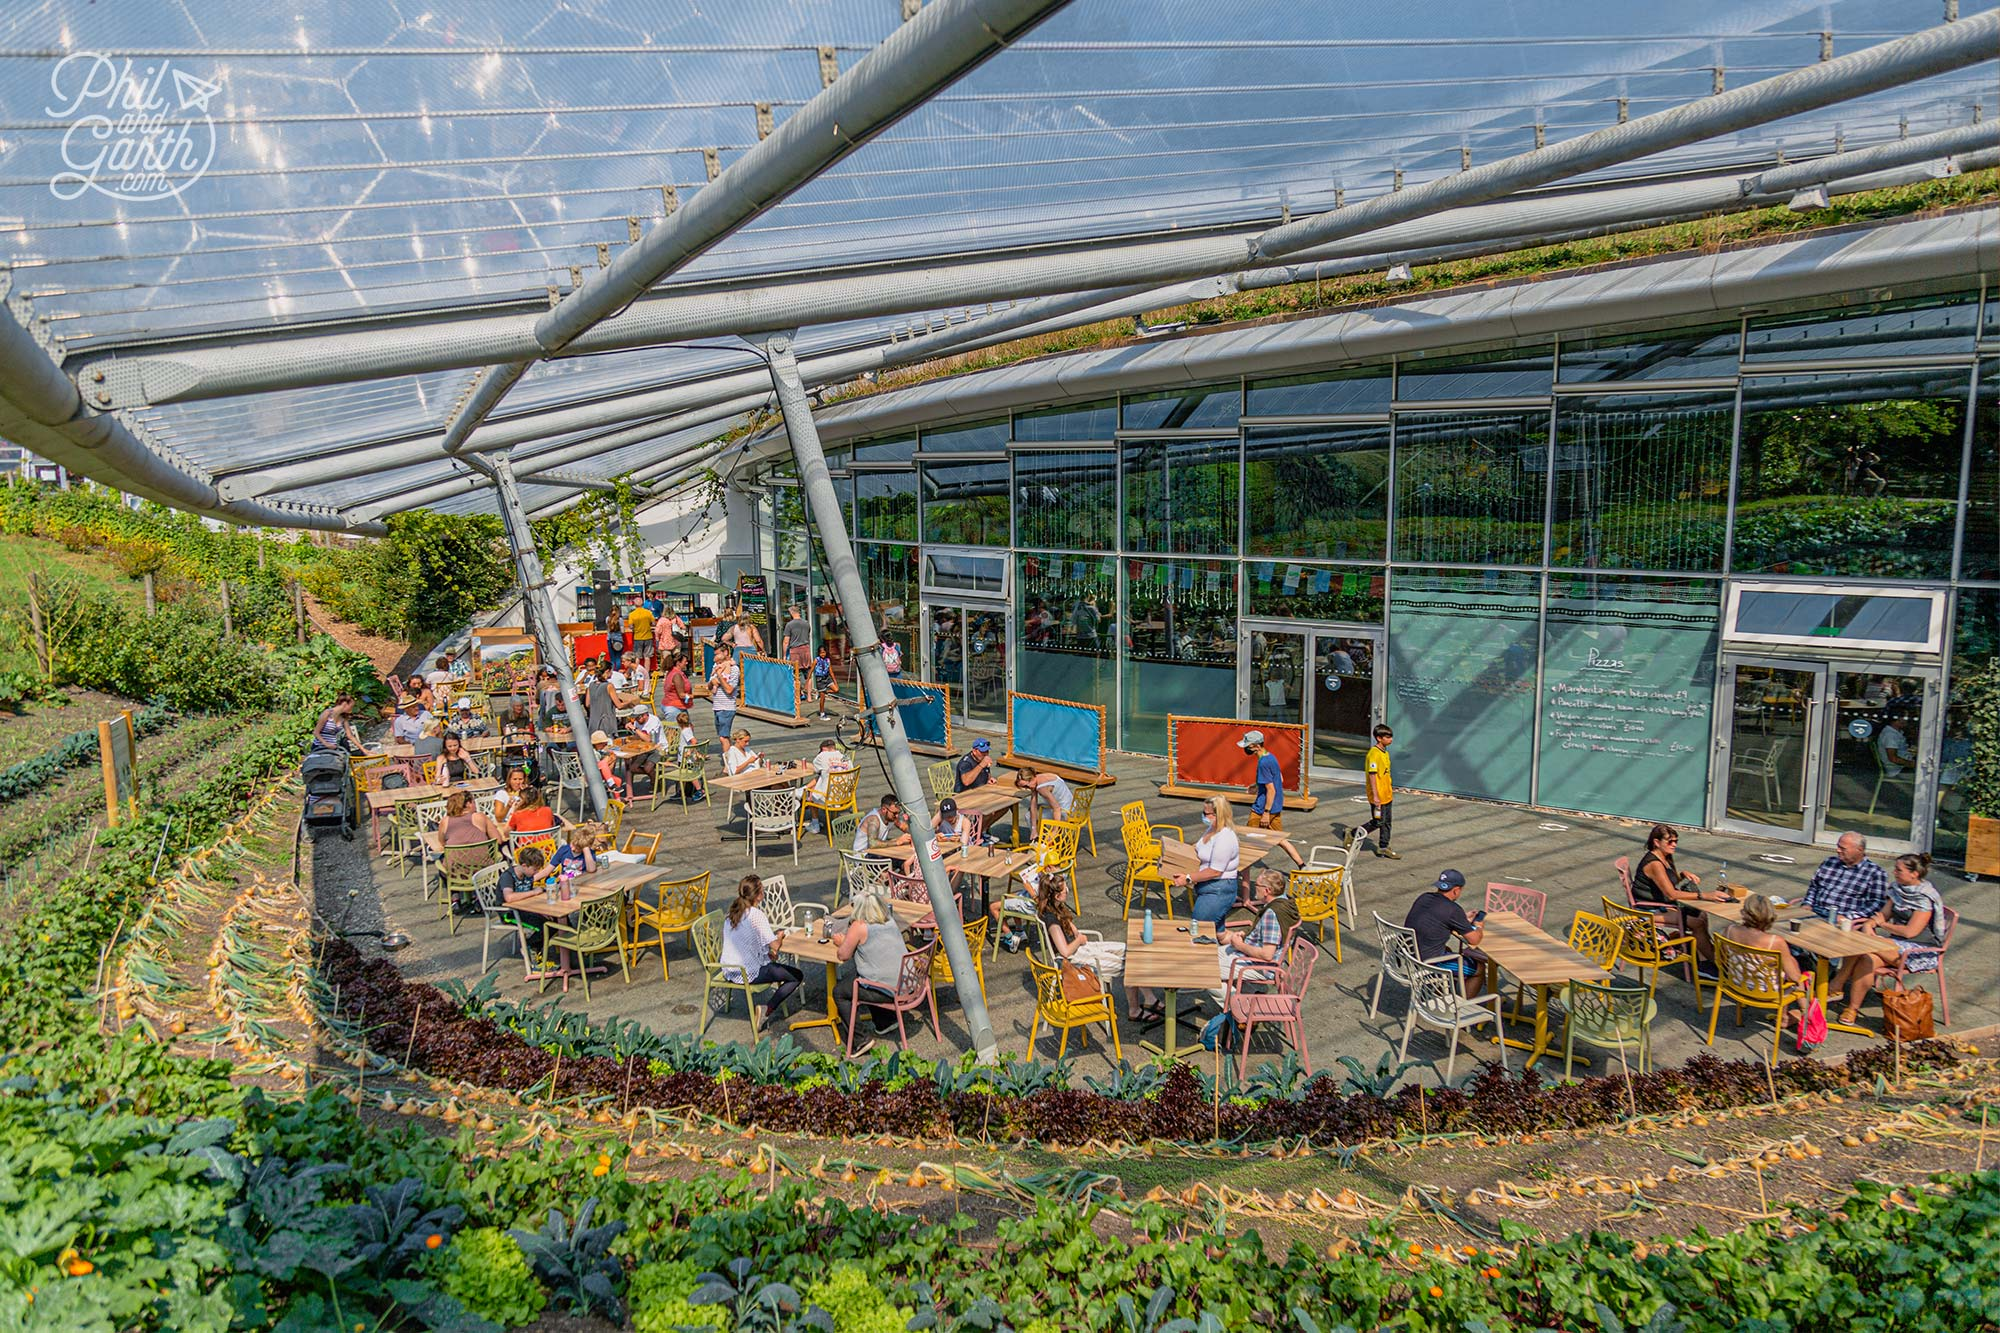 The Canopy Café in the building linking the 2 biomes